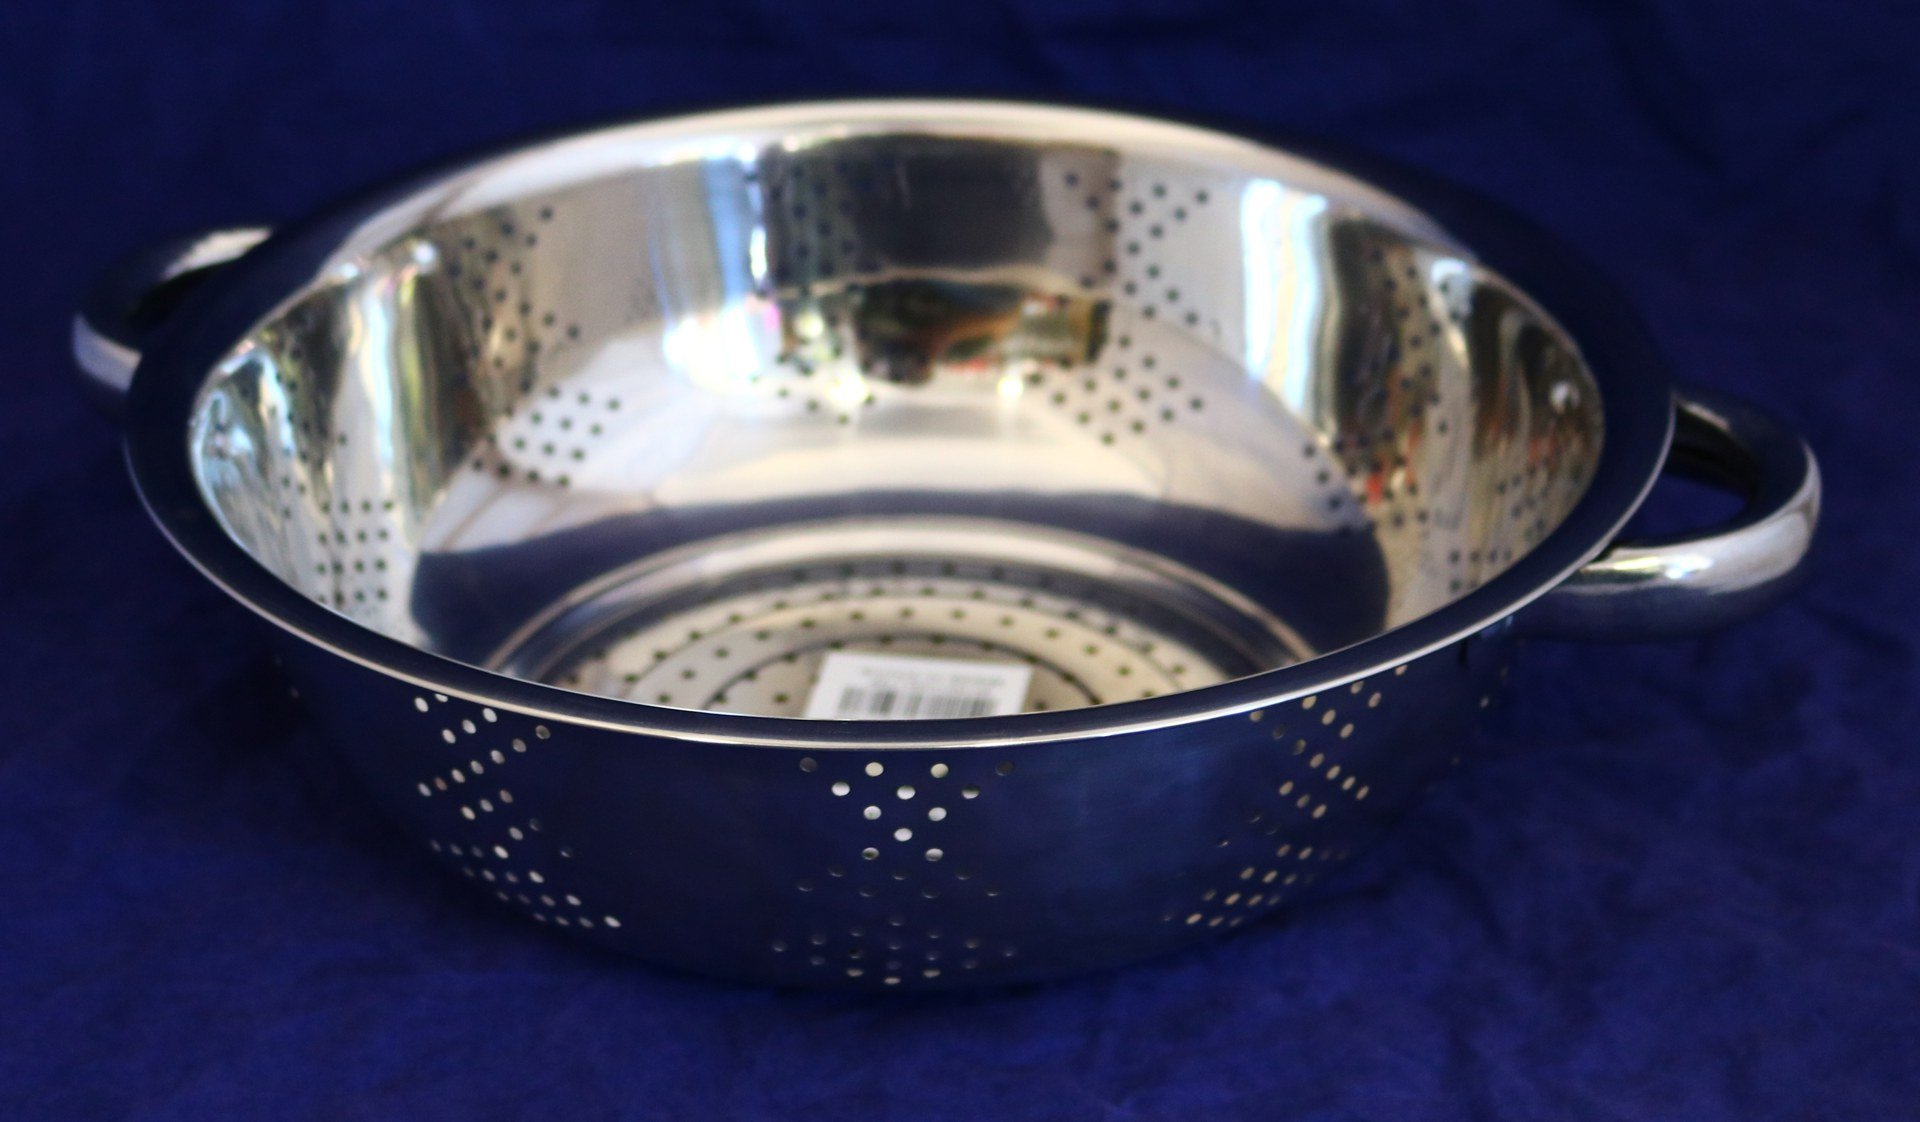 Stainless Steel 32 cm Strainer with Handle